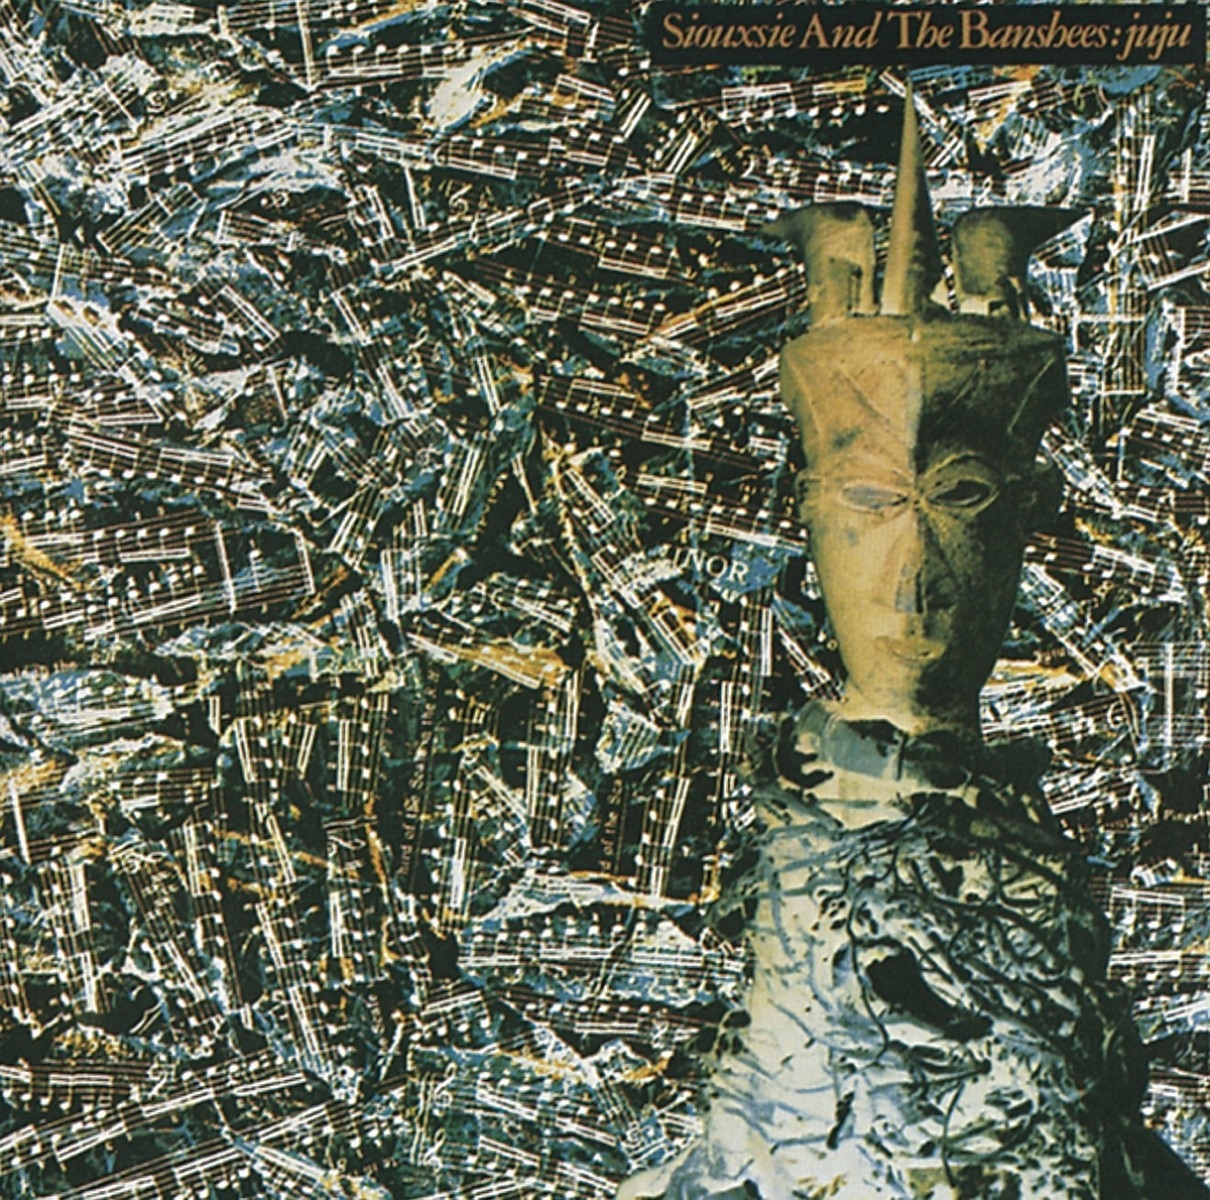 Siouxsie And The Banshees - Juju VINYL - 602557128604